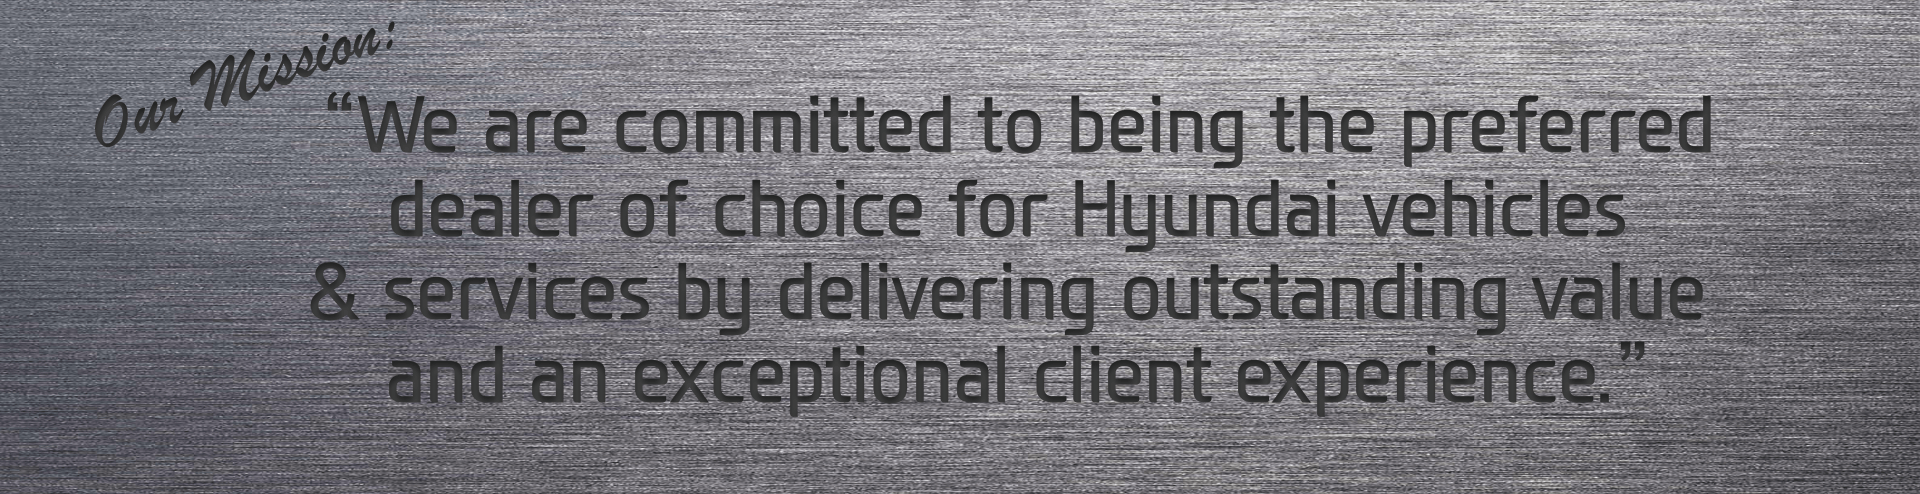 hyundai-committed